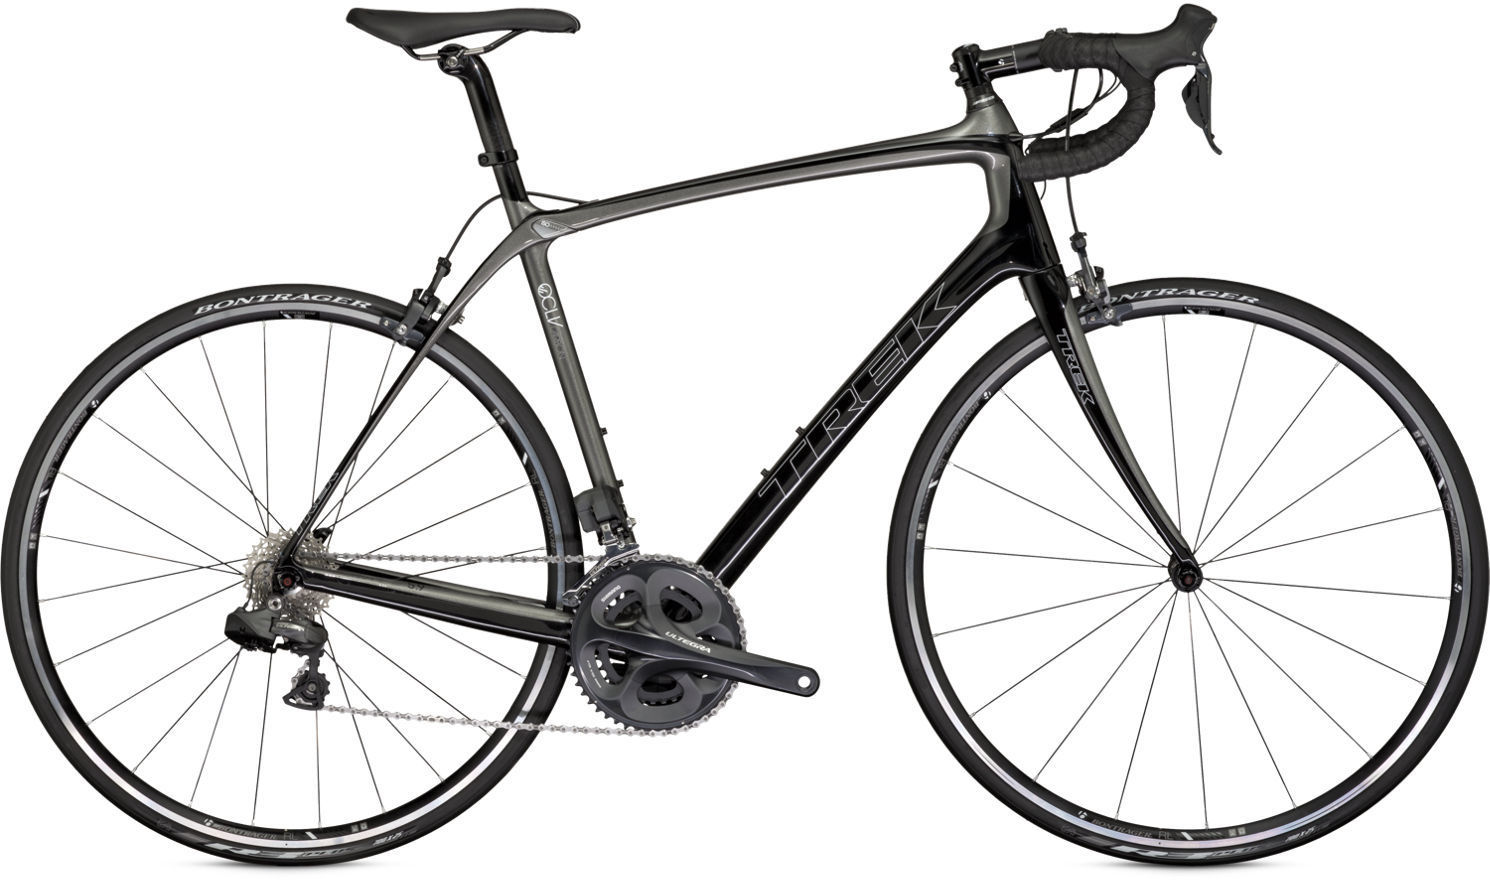 Trek Domane 5.9 2013 review - The Bike List